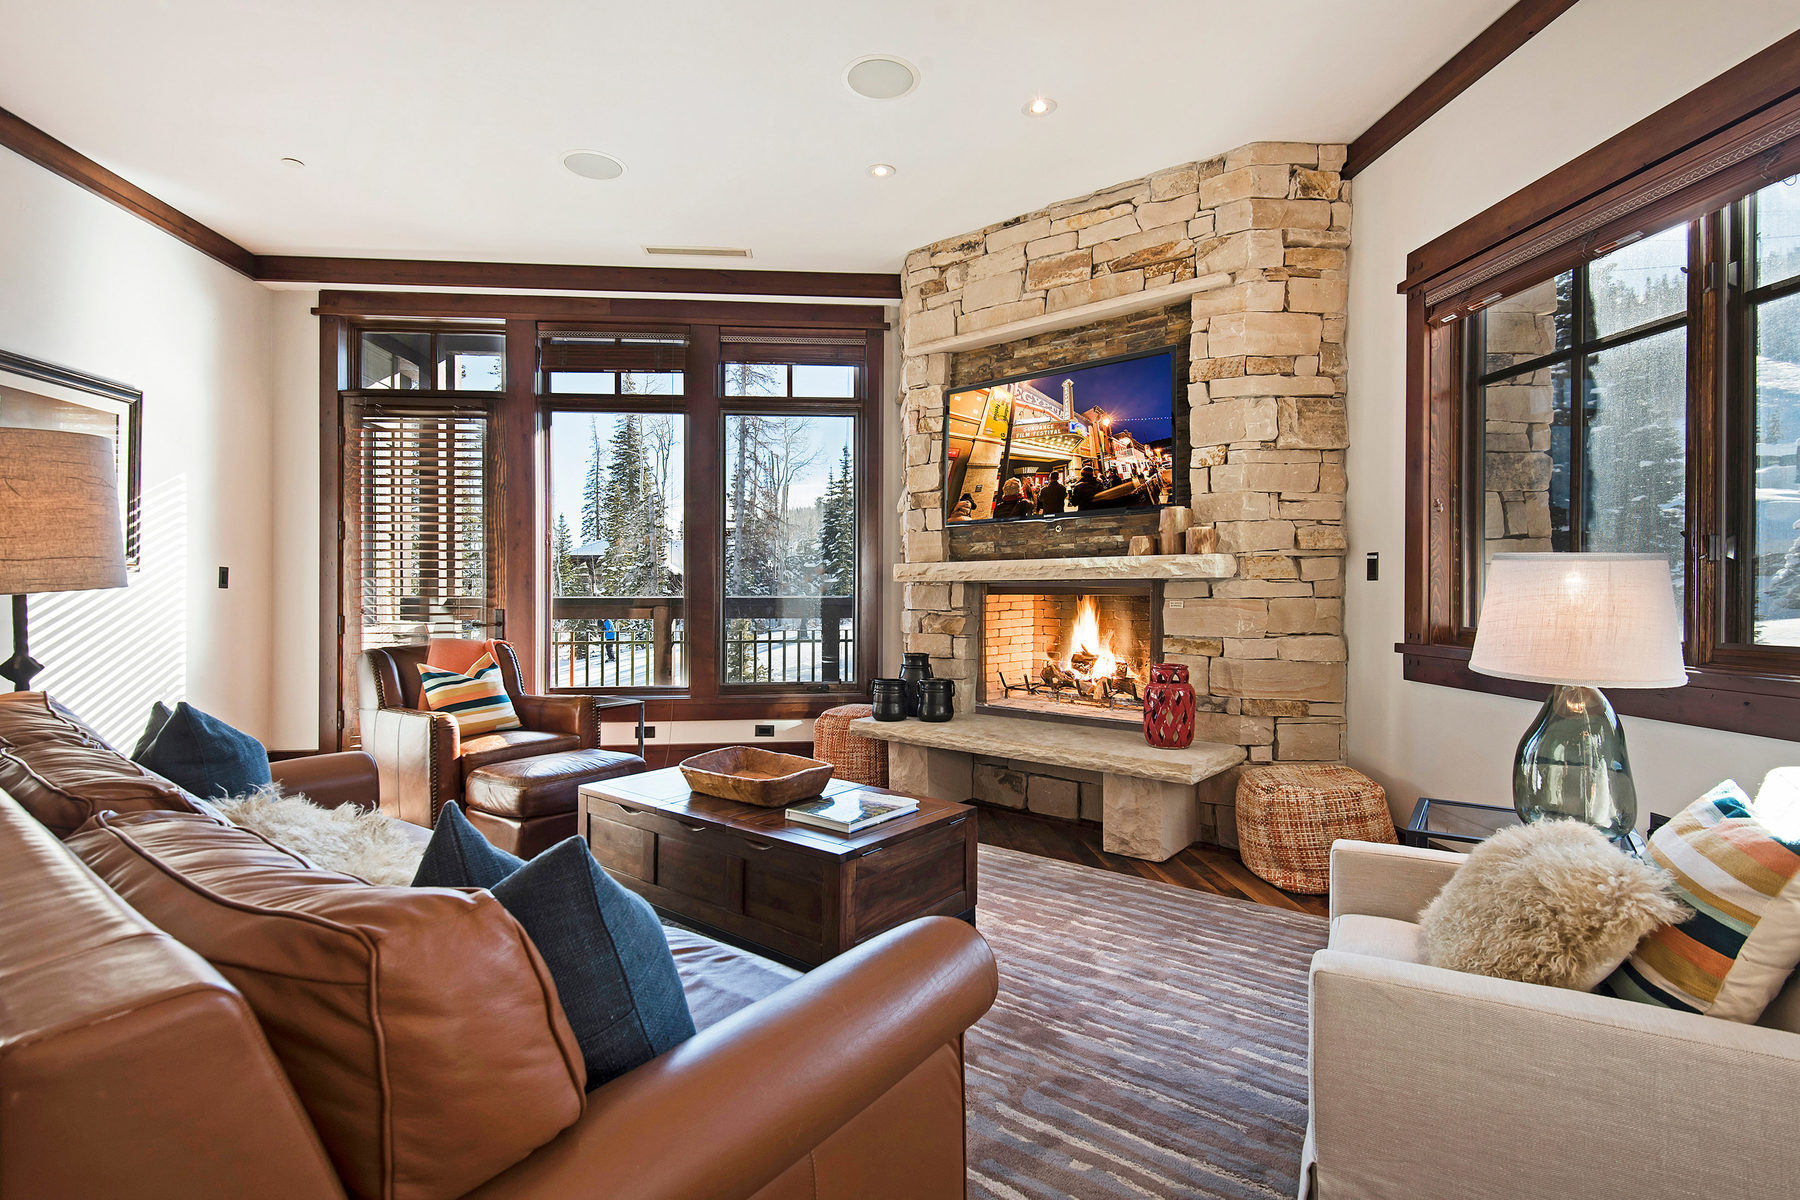 Copropriété pour l Vente à Ski In Ski Out Luxury Deer Valley Condo with Talisker Club Base Membership 8880 Empire Club Dr #212 Park City, Utah, 84060 États-Unis